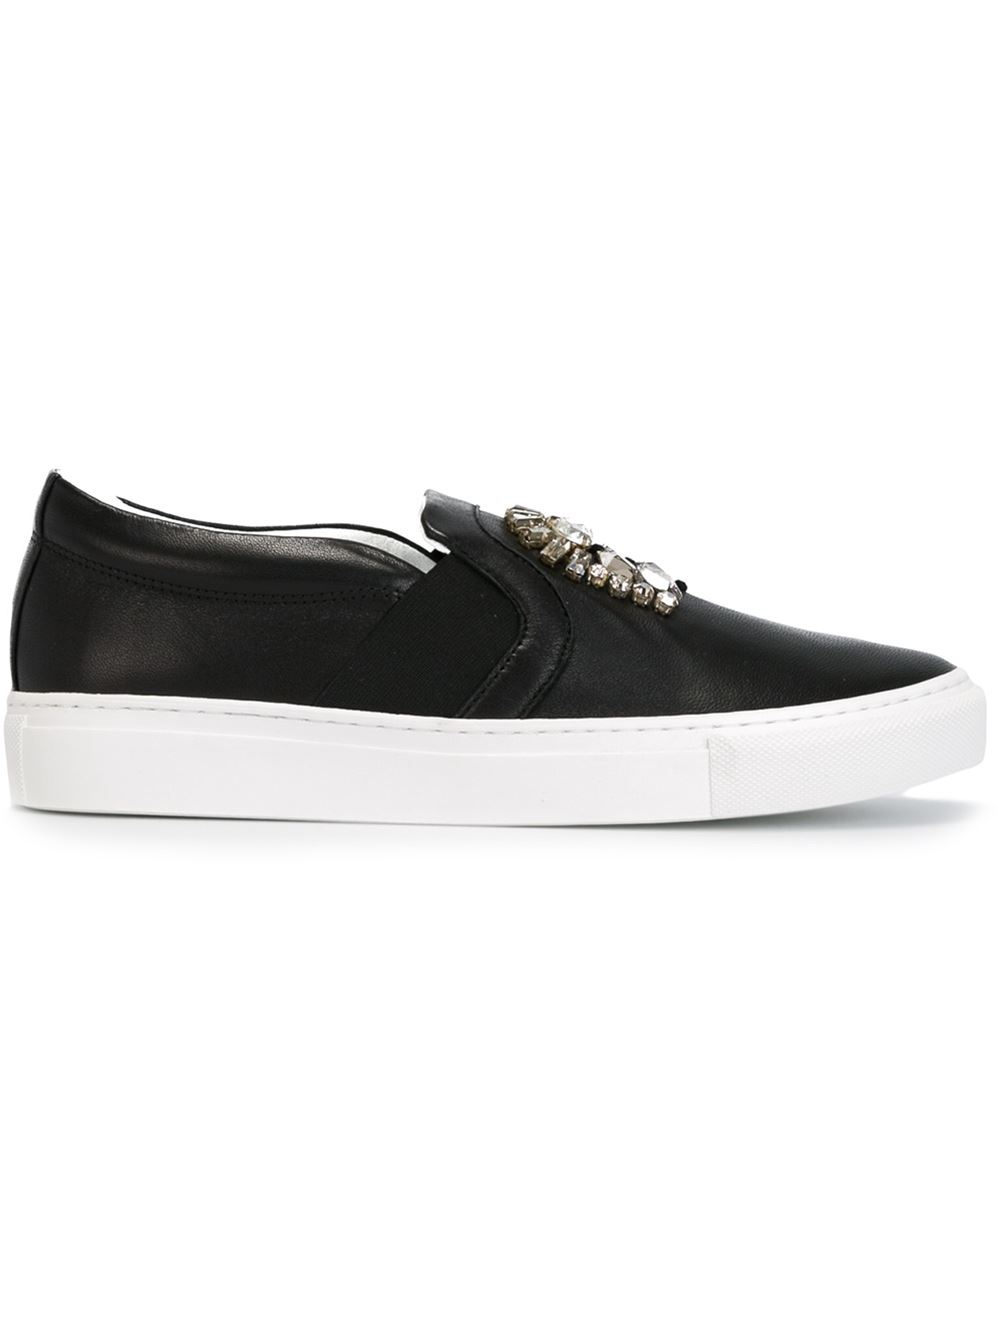 Black Slip On Sneakers For 28 Images Buscemi 40mm S